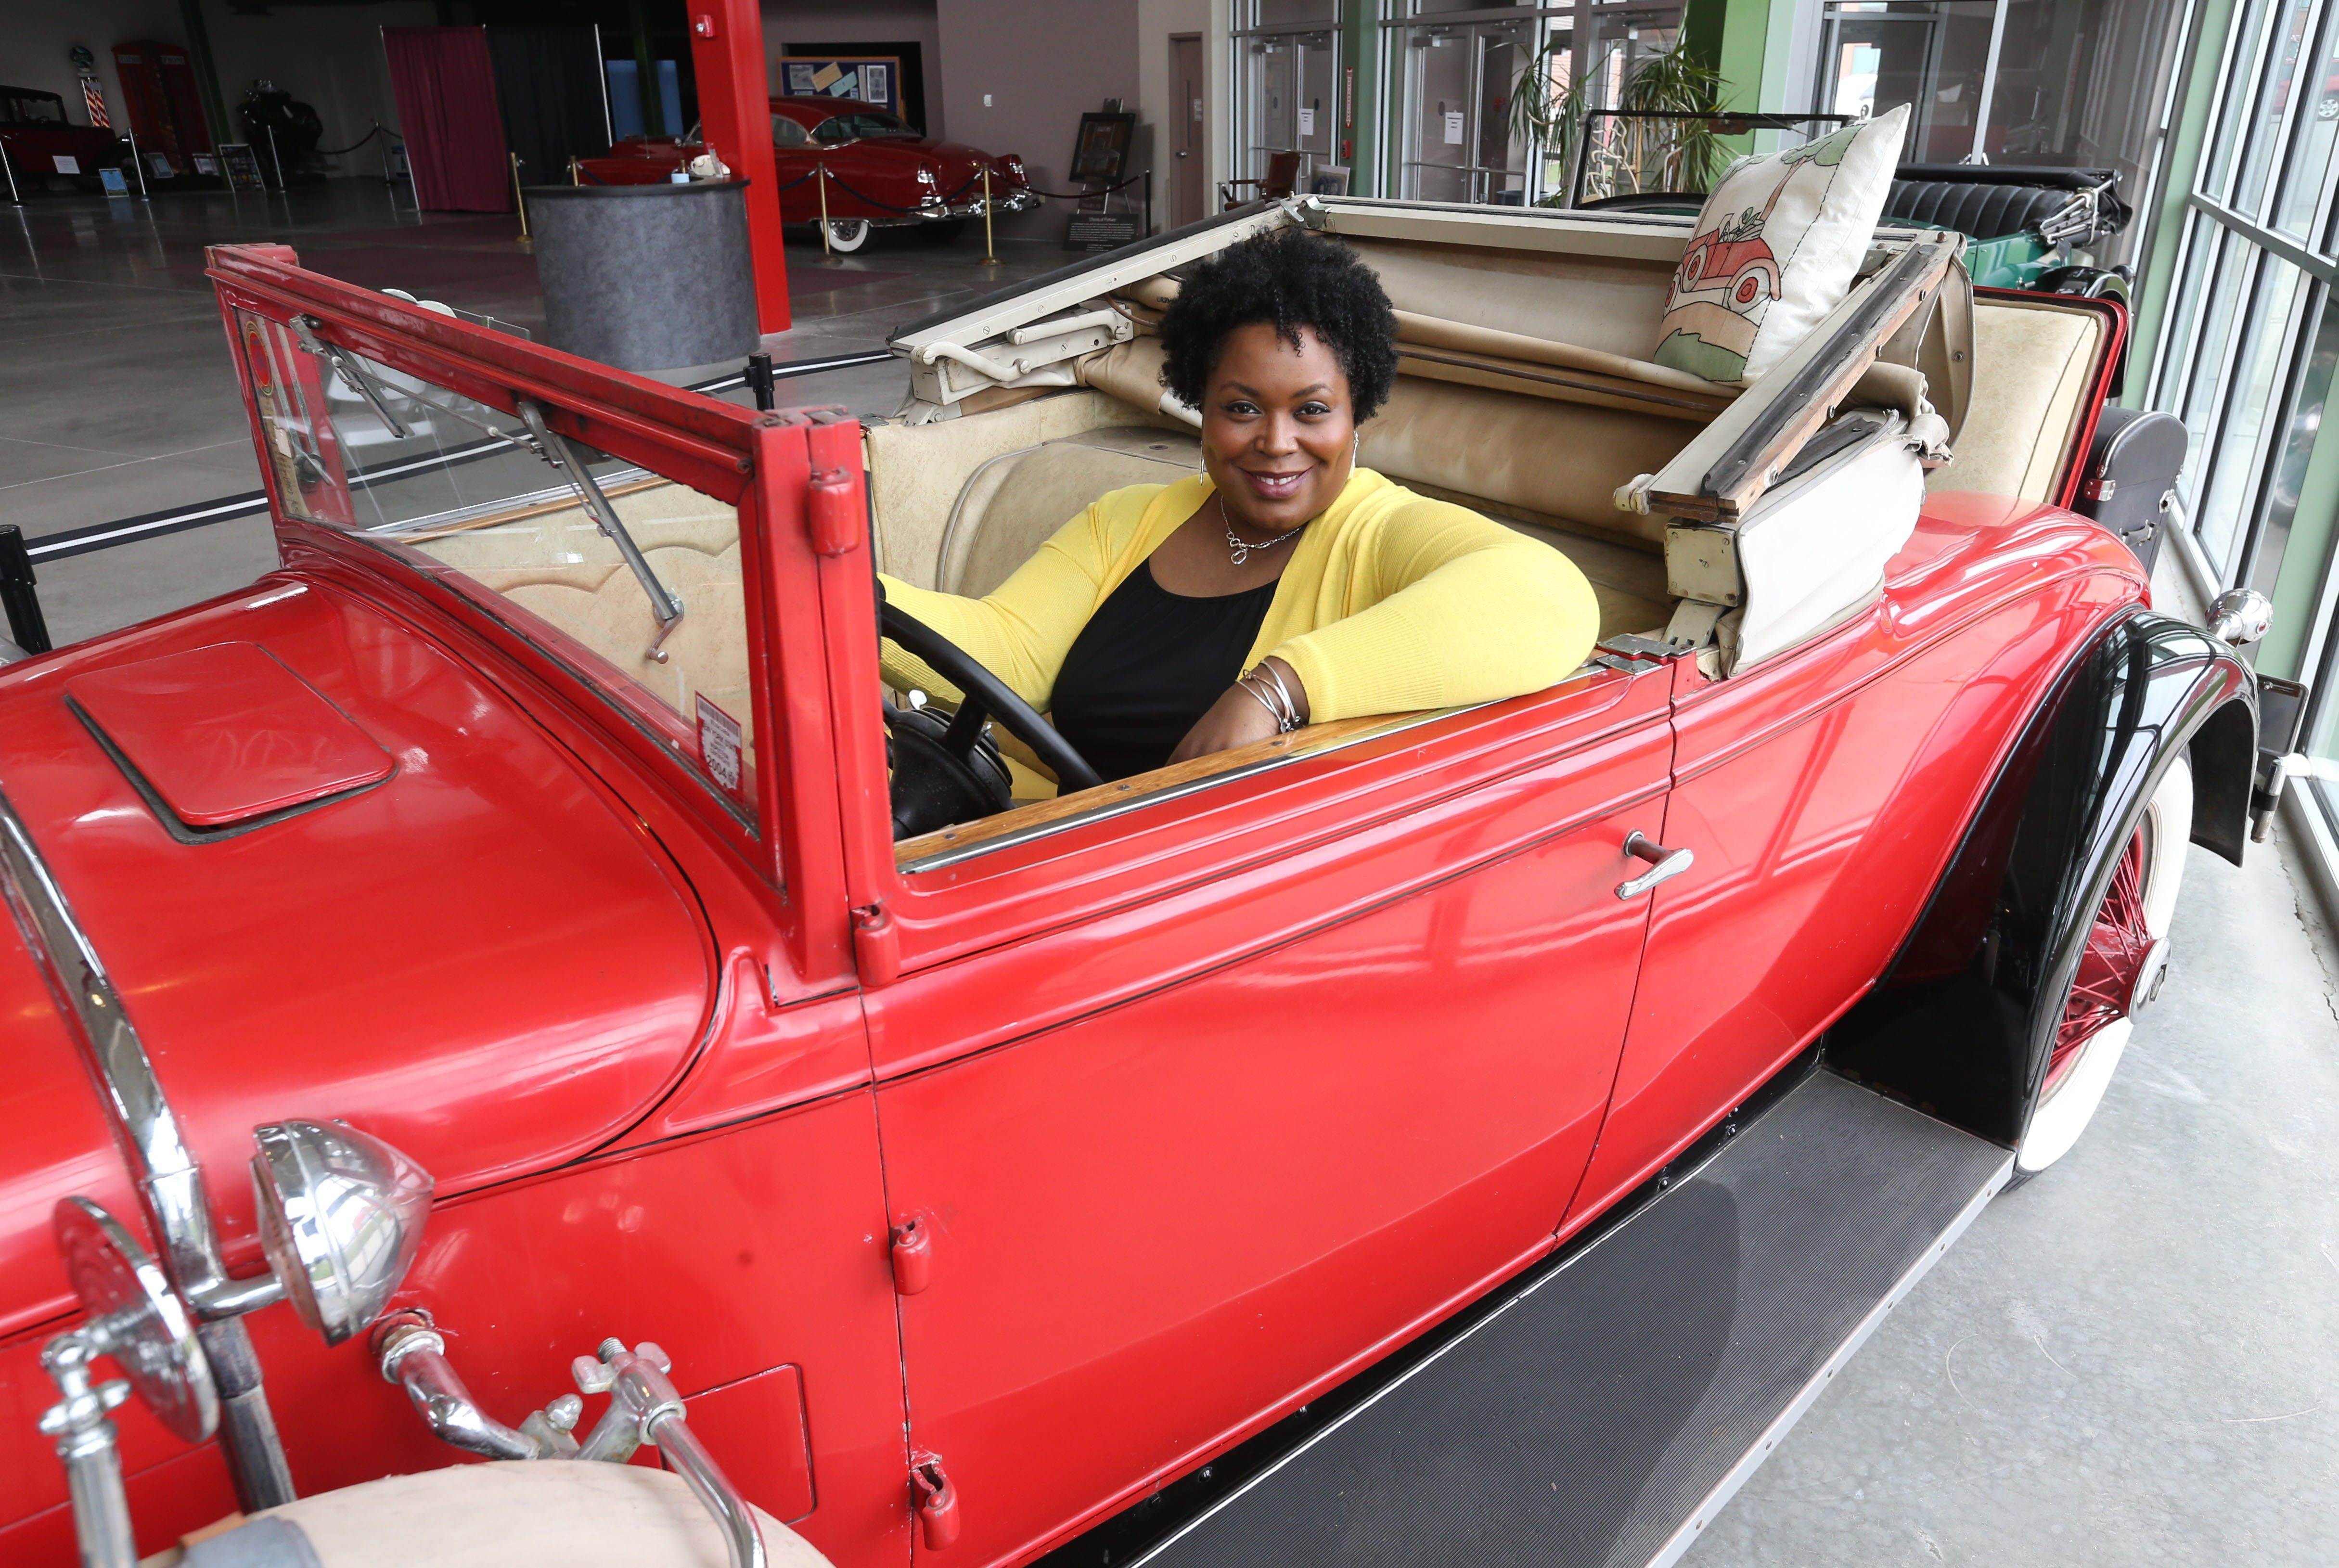 """I live in the front seat. I'm conscious about the decisions I make."" – Kelly Marie Showard, founder of the Front Seat Chronicles, a social media campaign to share experiences and instill hope, in the front seat of a 1929 Stutz convertible at the Buffalo Transportation Pierce-Arrow Museum."